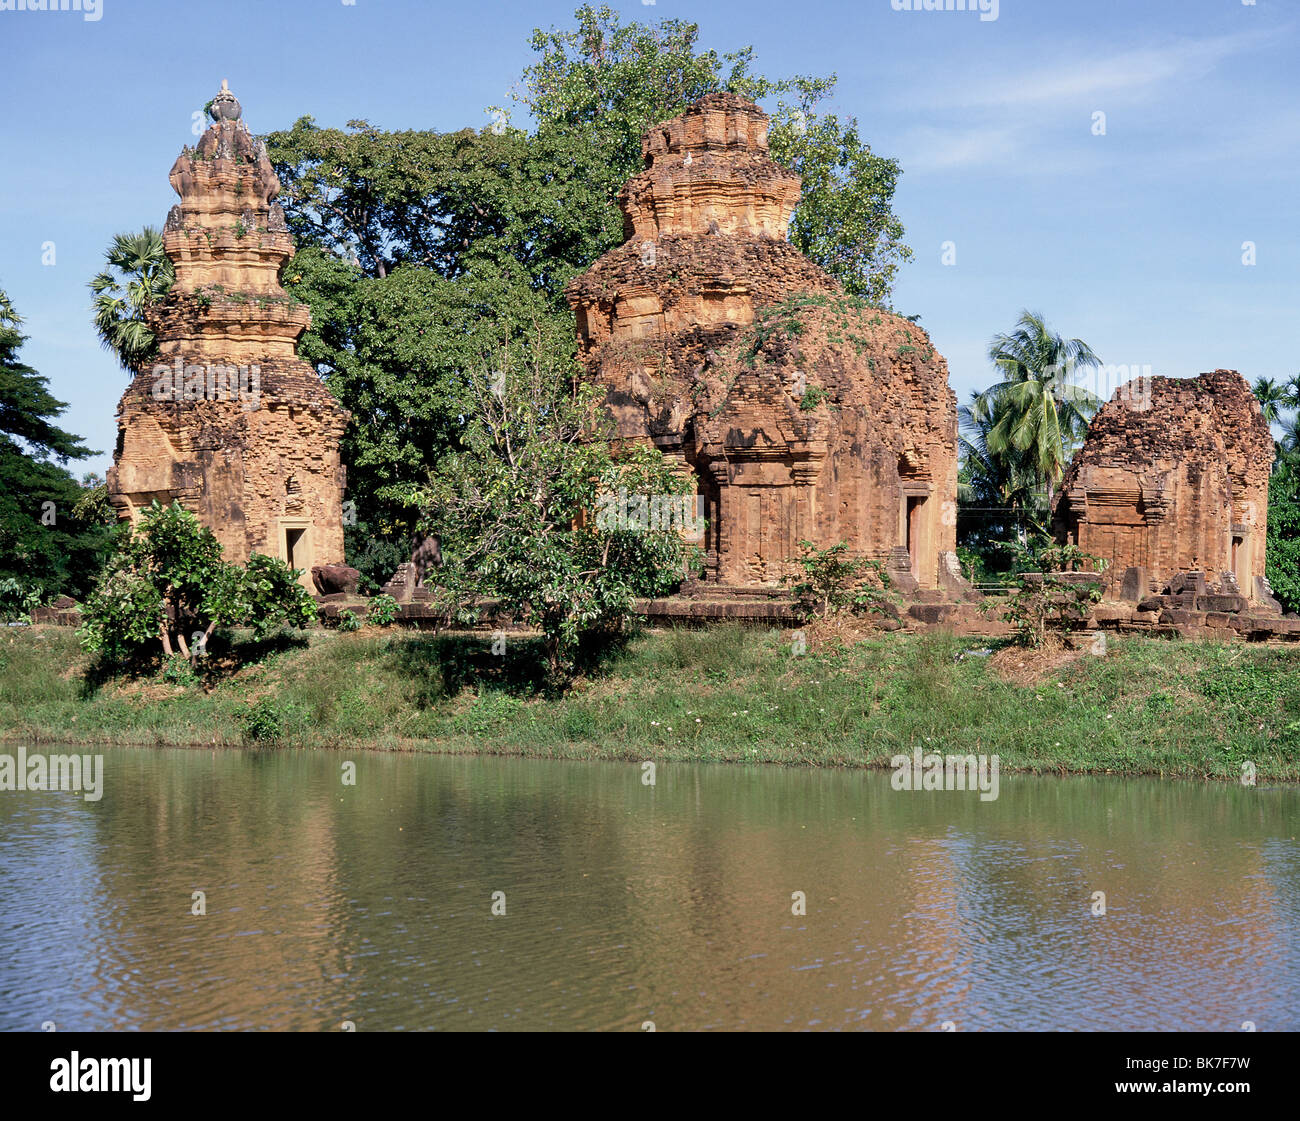 The overgrown Khmer temple of Prasat Si Koraphum, Thailand, Southeast Asia, Asia - Stock Image